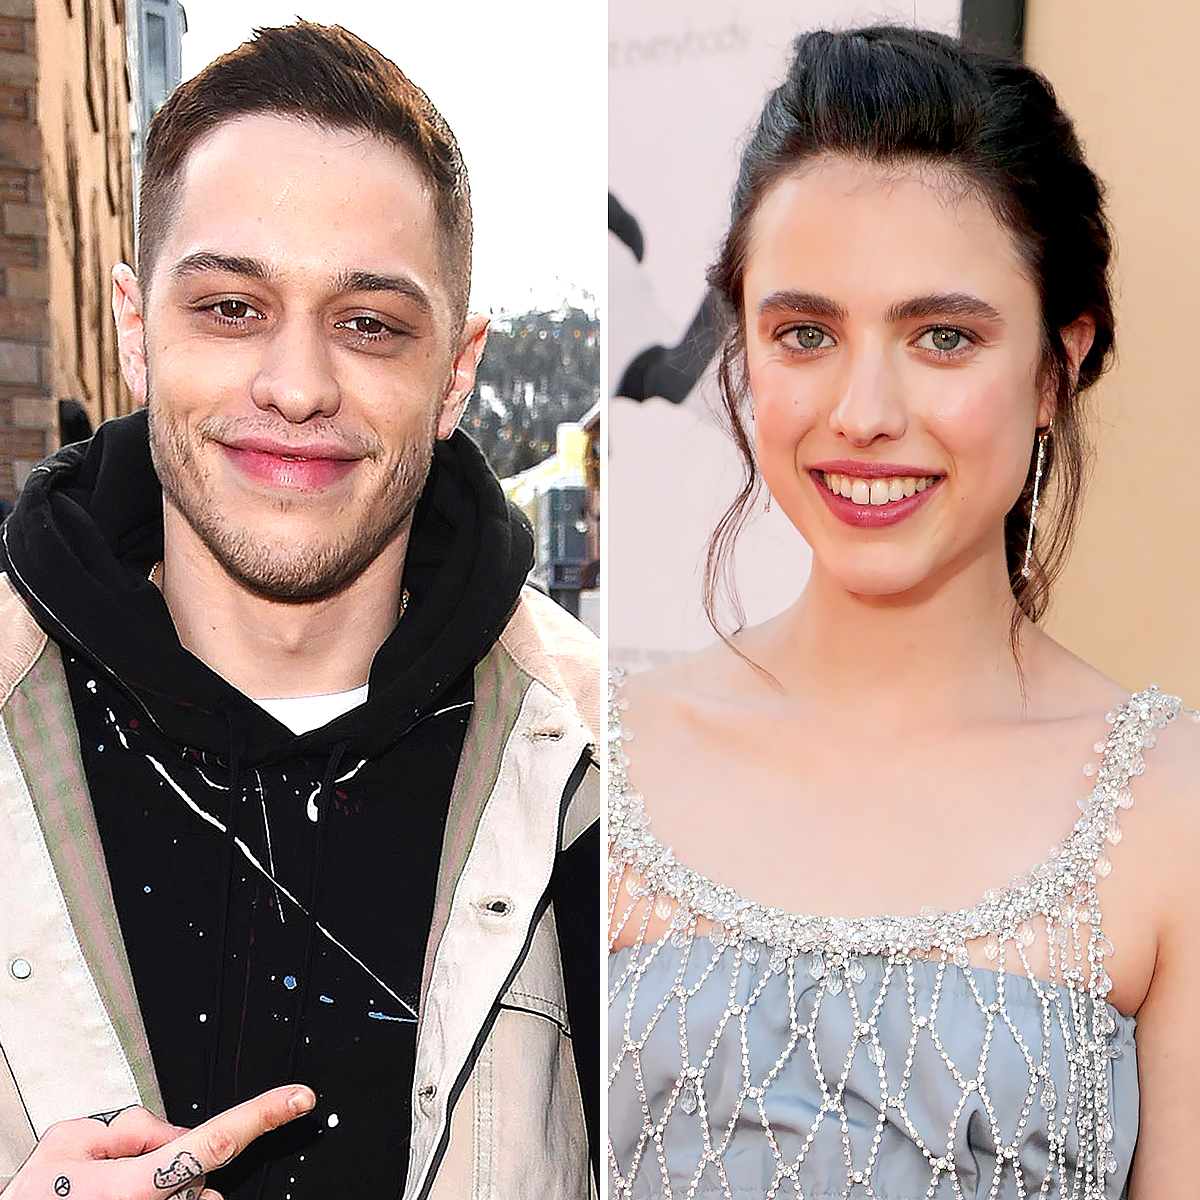 Pete-Davidson-Is-Dating-Actress-Margaret-Qualley 1